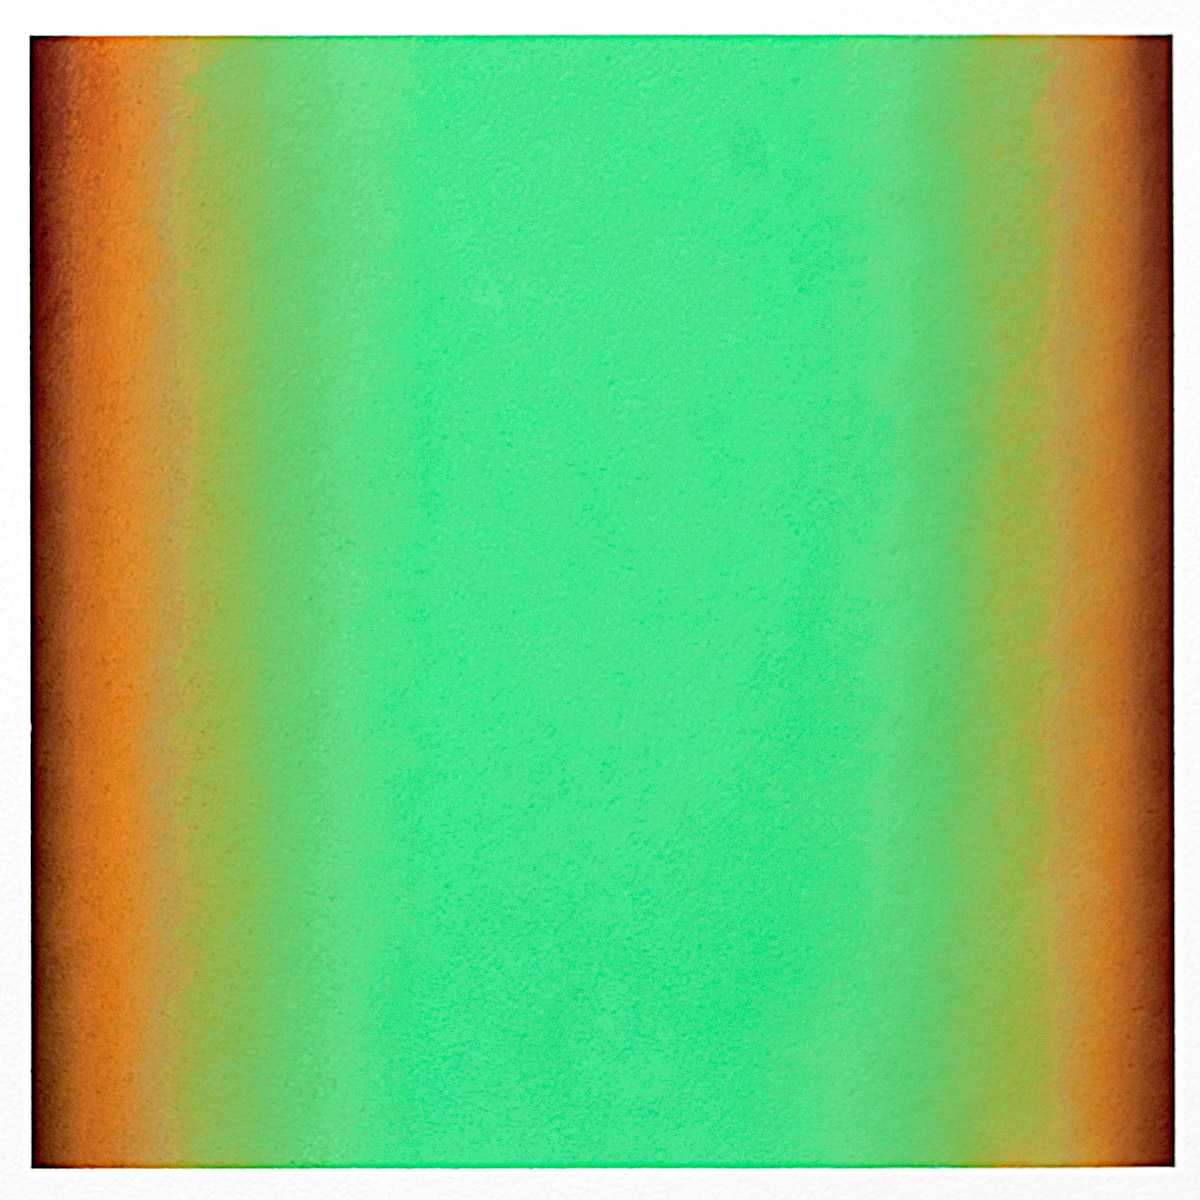 Cool-Light Green-Orange, Warm-Light Cool-Light Series, 2012, pastel on paper, image: 14 x 14 in. (36 x 36 cm.), sheet: 30 x 22 in. (76 x 56 cm.)